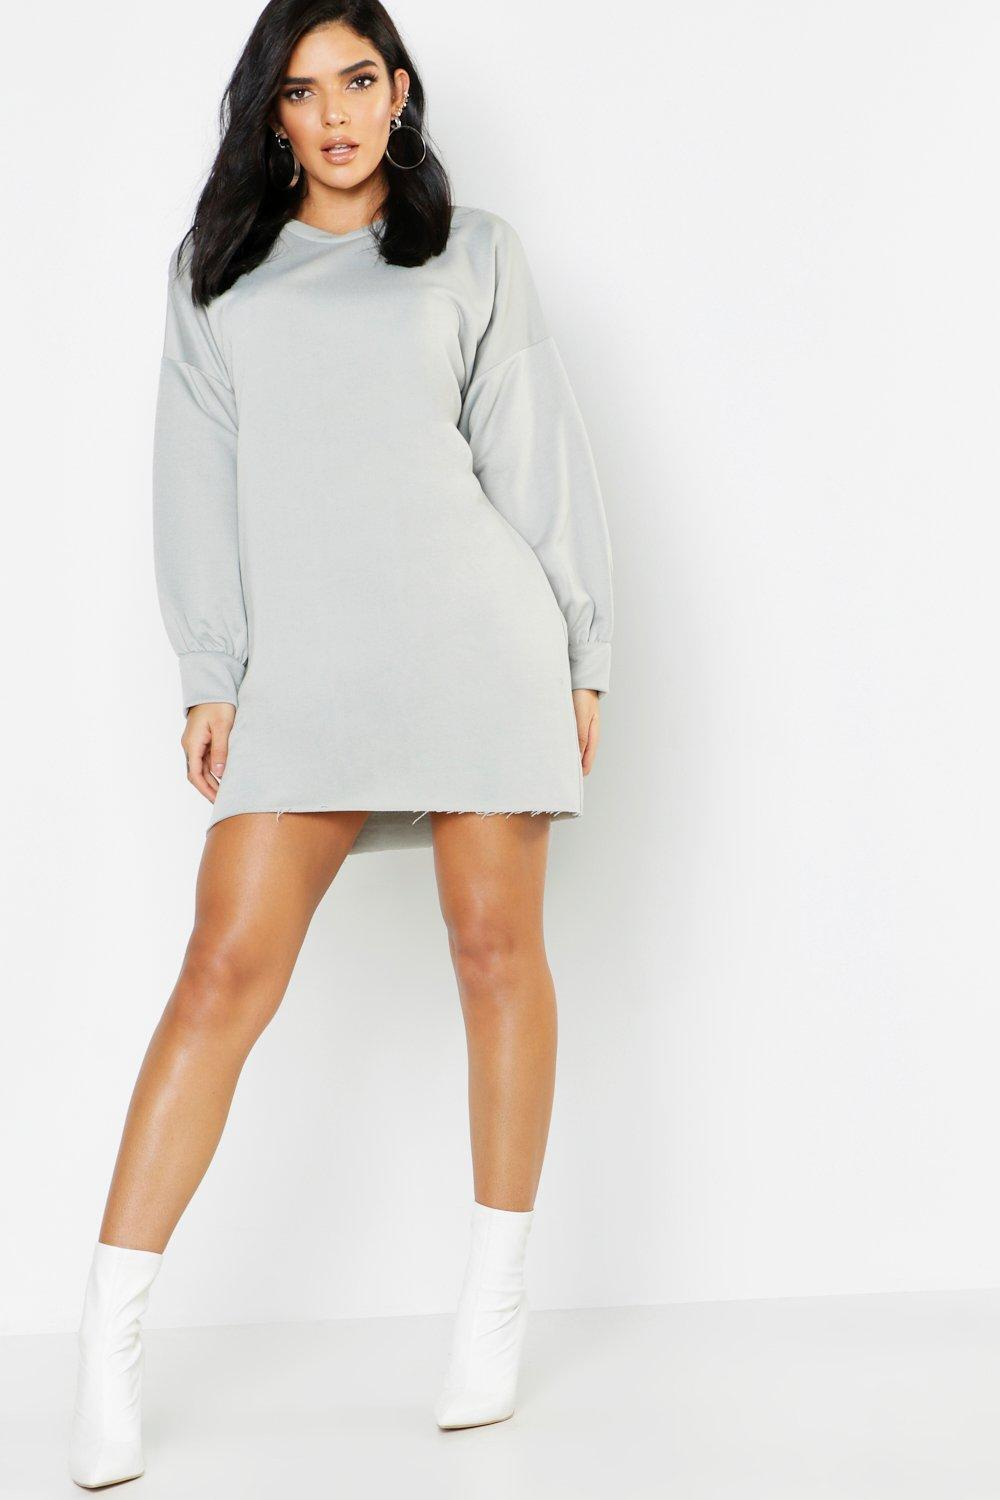 ff5f918591a Lyst - Boohoo Beverly Hills Front   Back Print Sweat Dress in Gray